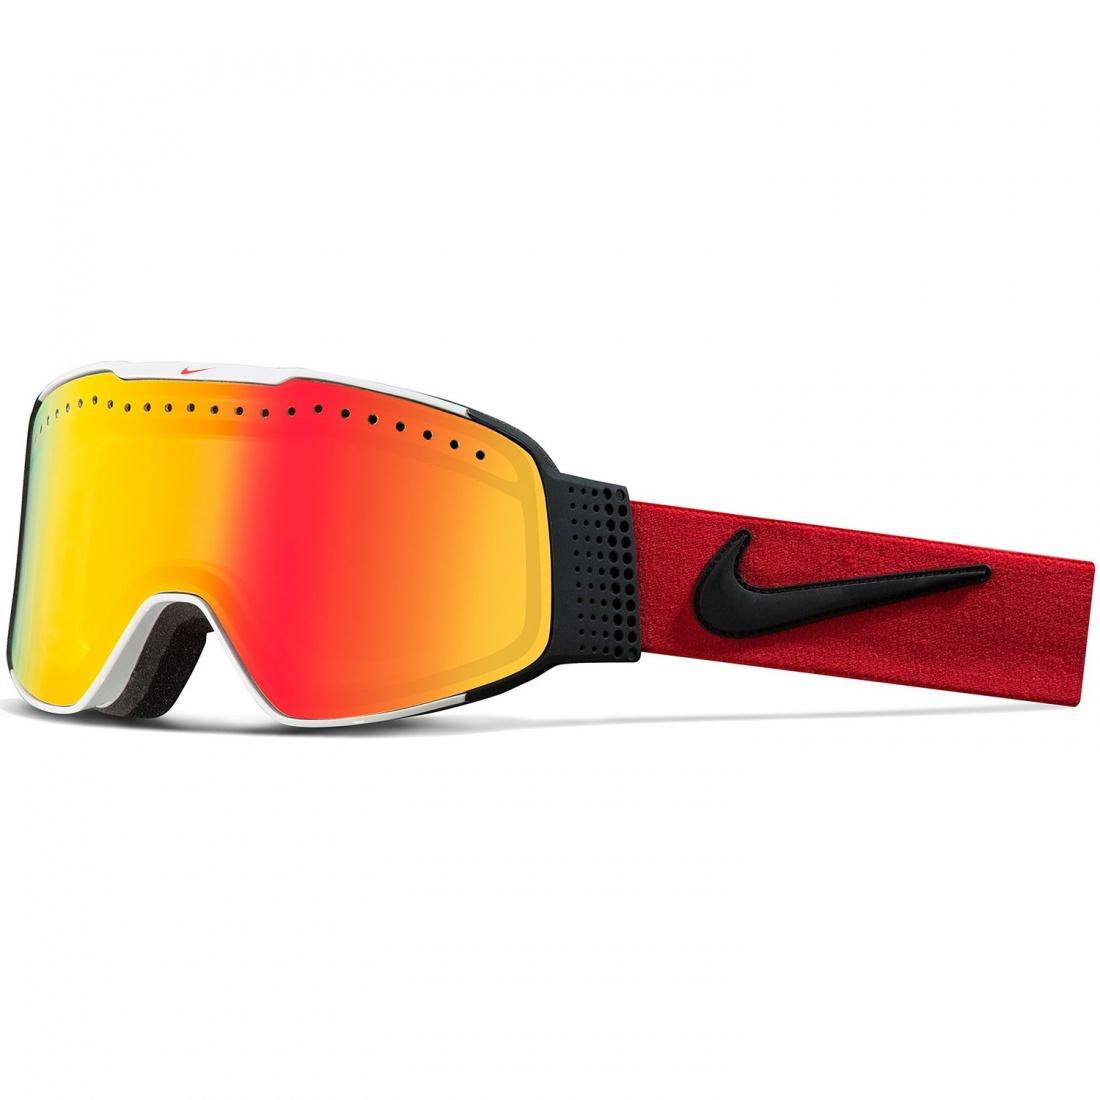 Nike SB Маска сноубордическая Nike Fade Team Red-Bright Crimson/Yellow Red Ion+Dark Smoke, , , One size team up starter sb